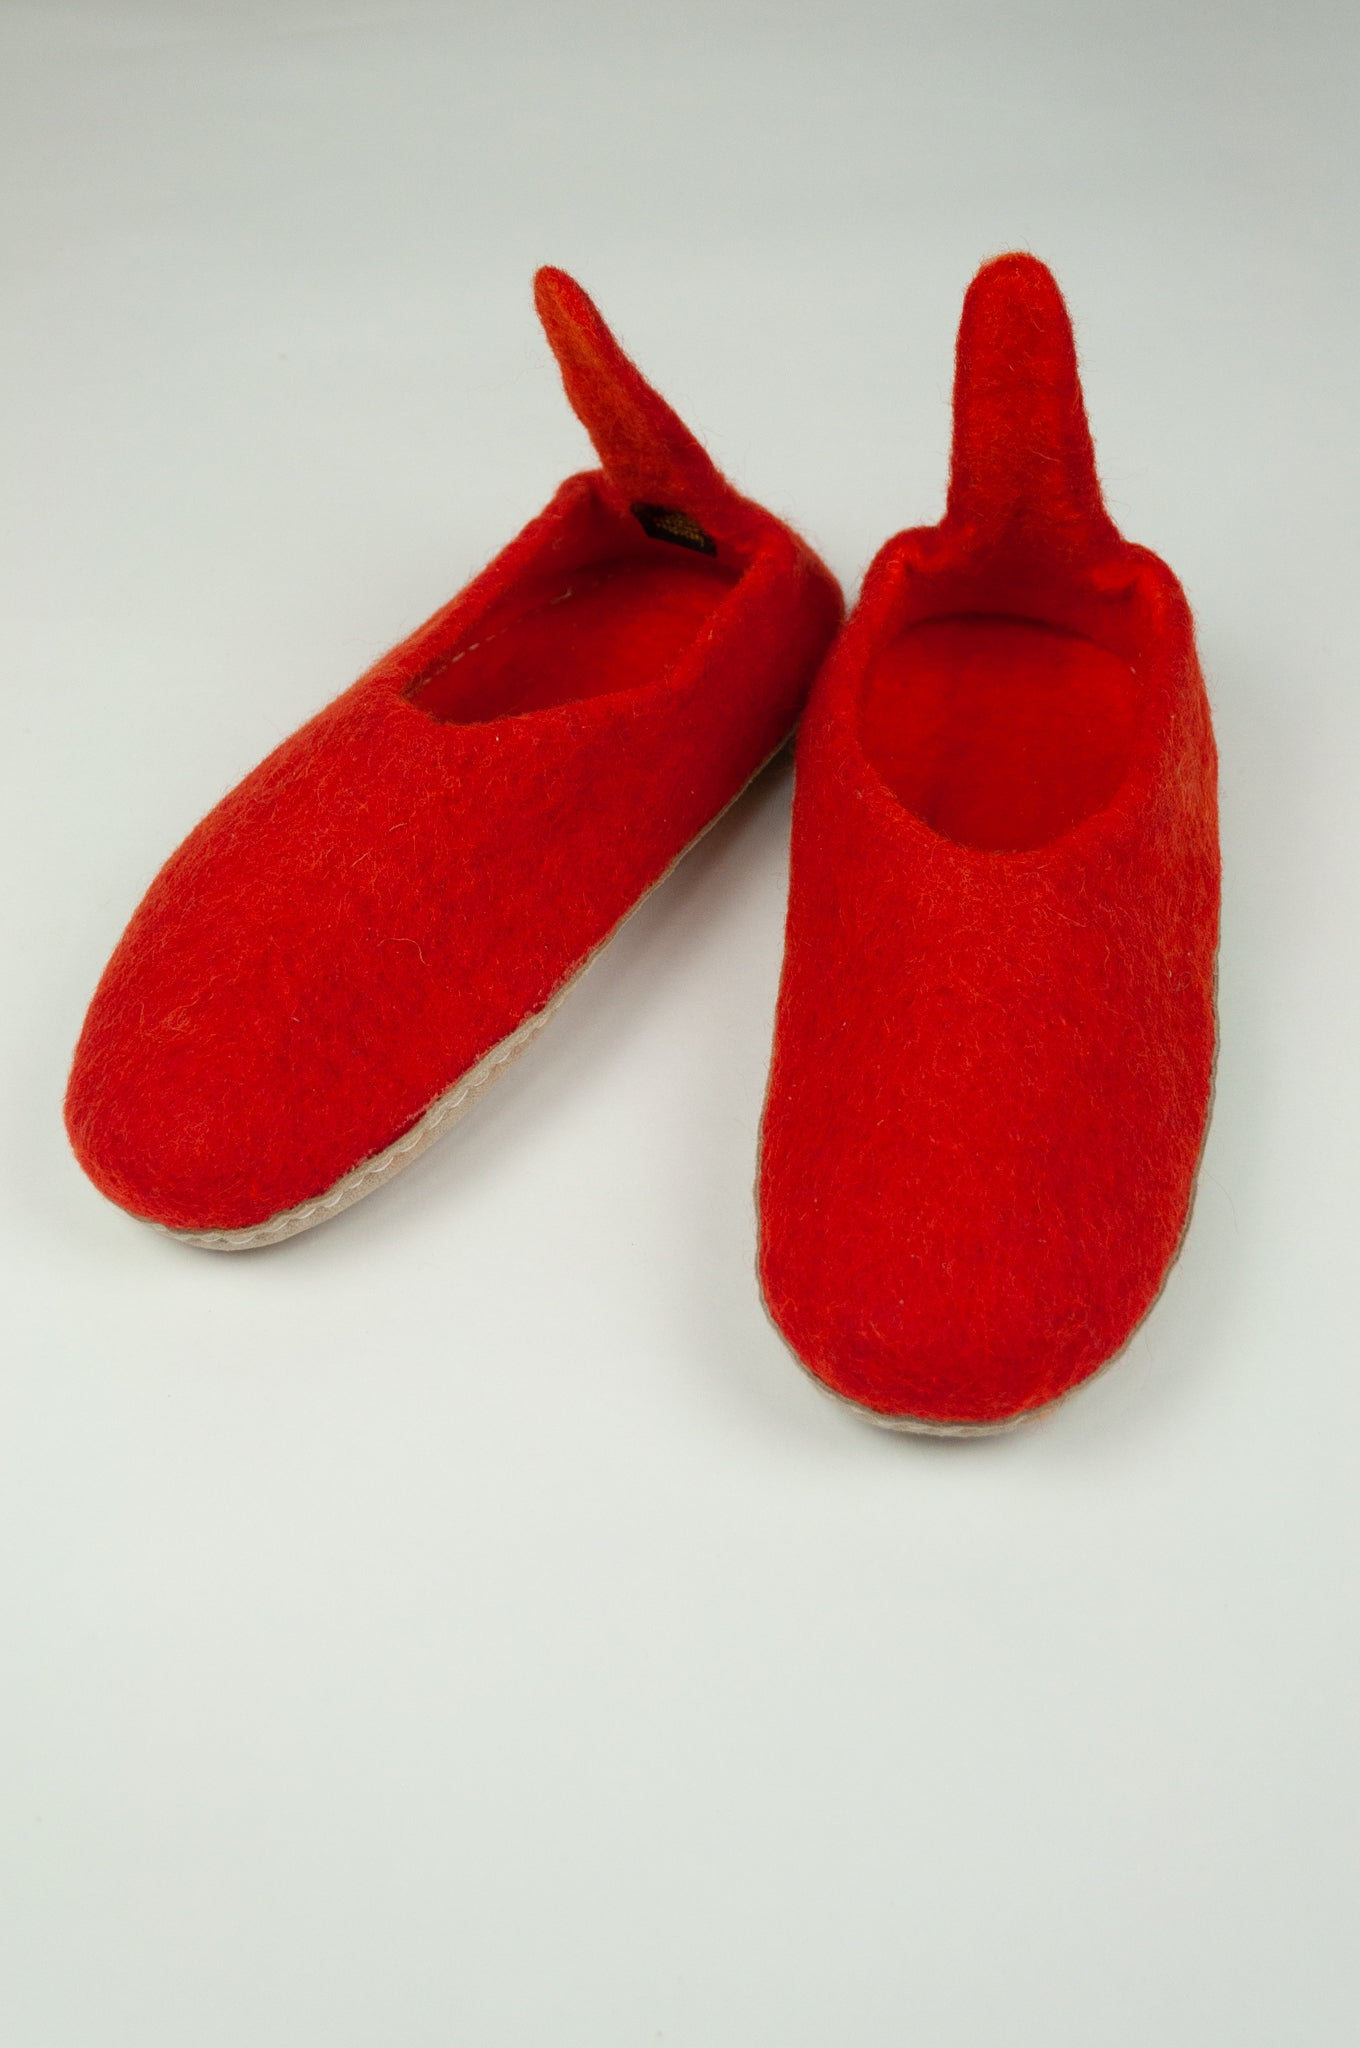 Fair trade wool felt slippers pull on style with heel tab in orange red.